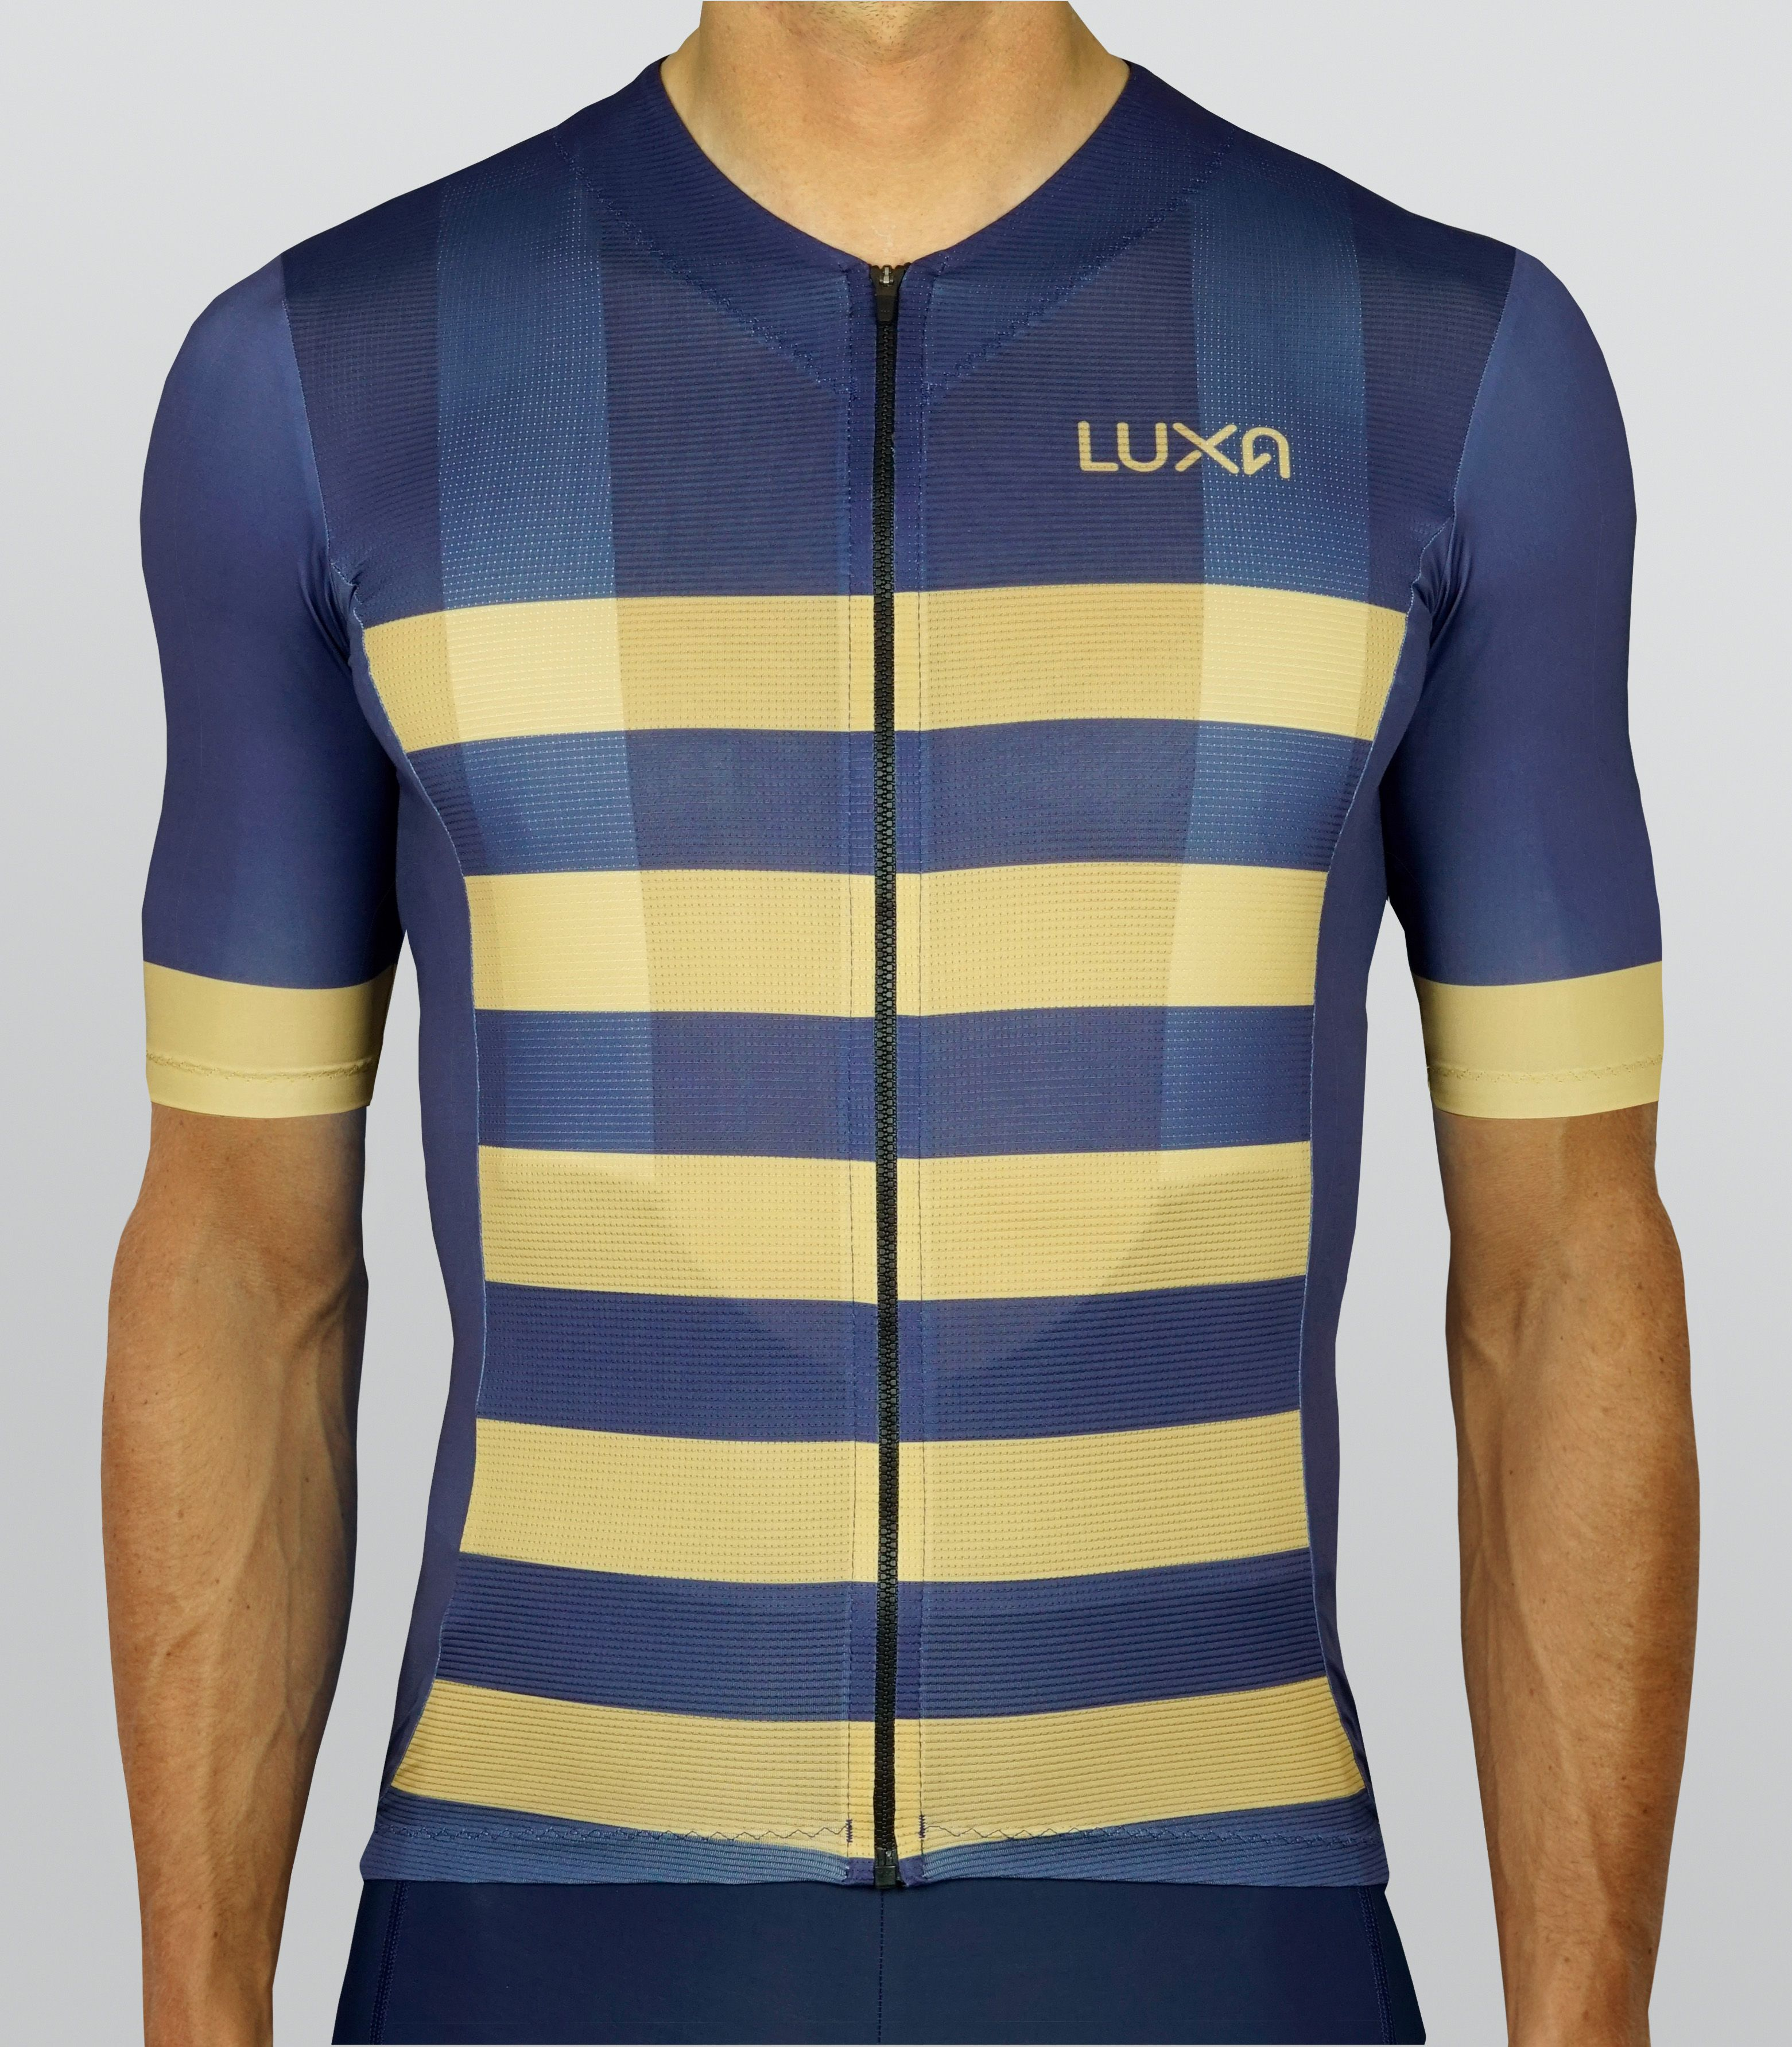 Navy blue cycling jersey from the Bling Navy collection. Dark navy blue  colors with gold stripes. Recommended in pair with navy blue shorts. e5add1091